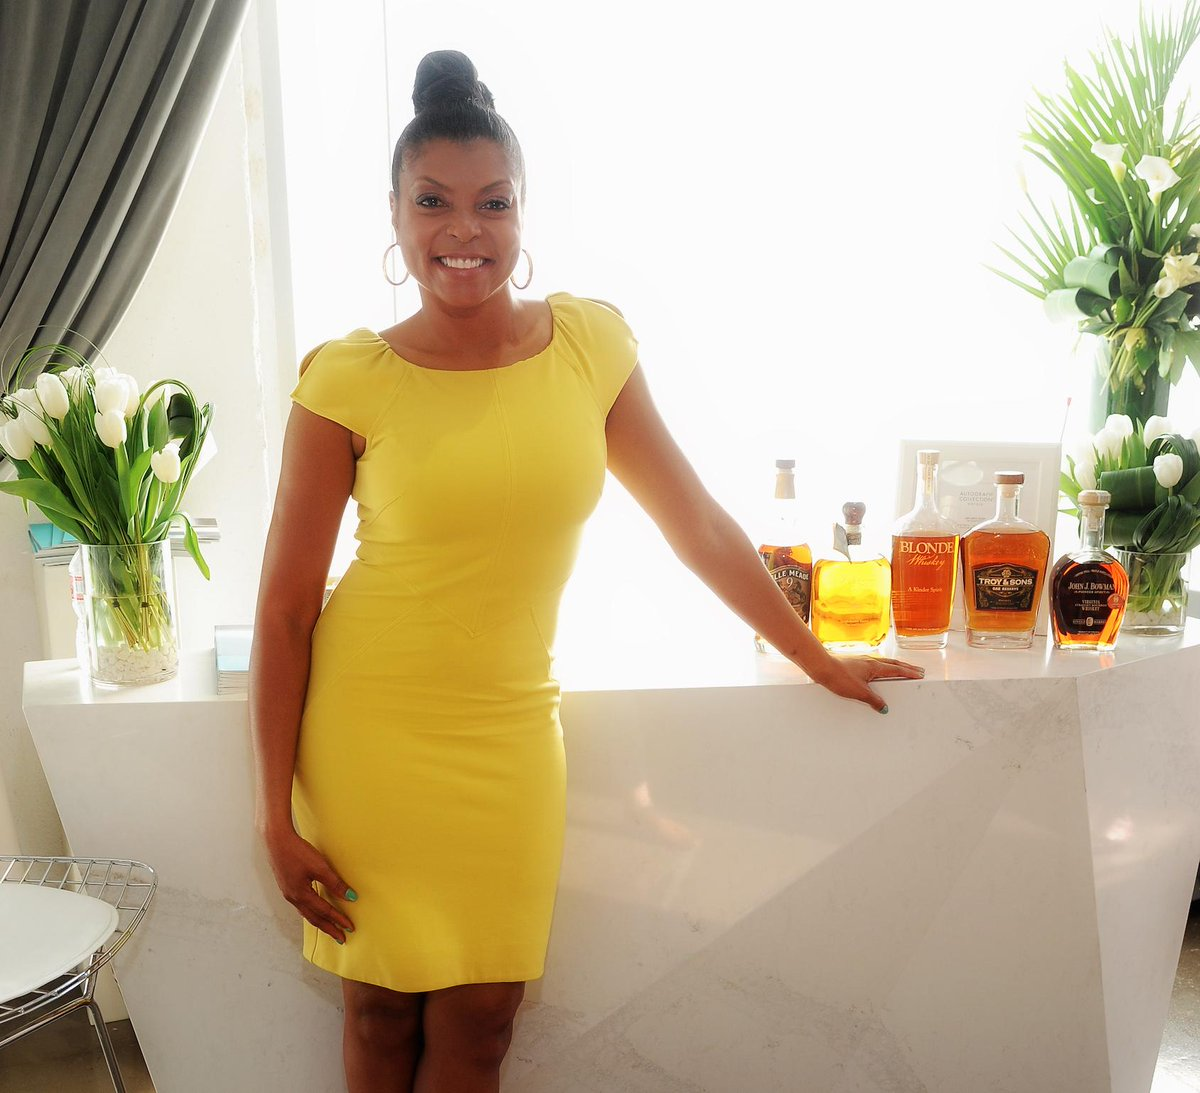 #Cookie fix, anyone?@TherealTaraji looks radiant in front of Calacatta Nuvo bar @Variety #ActorsOnActors http://t.co/nGMiydlP3I